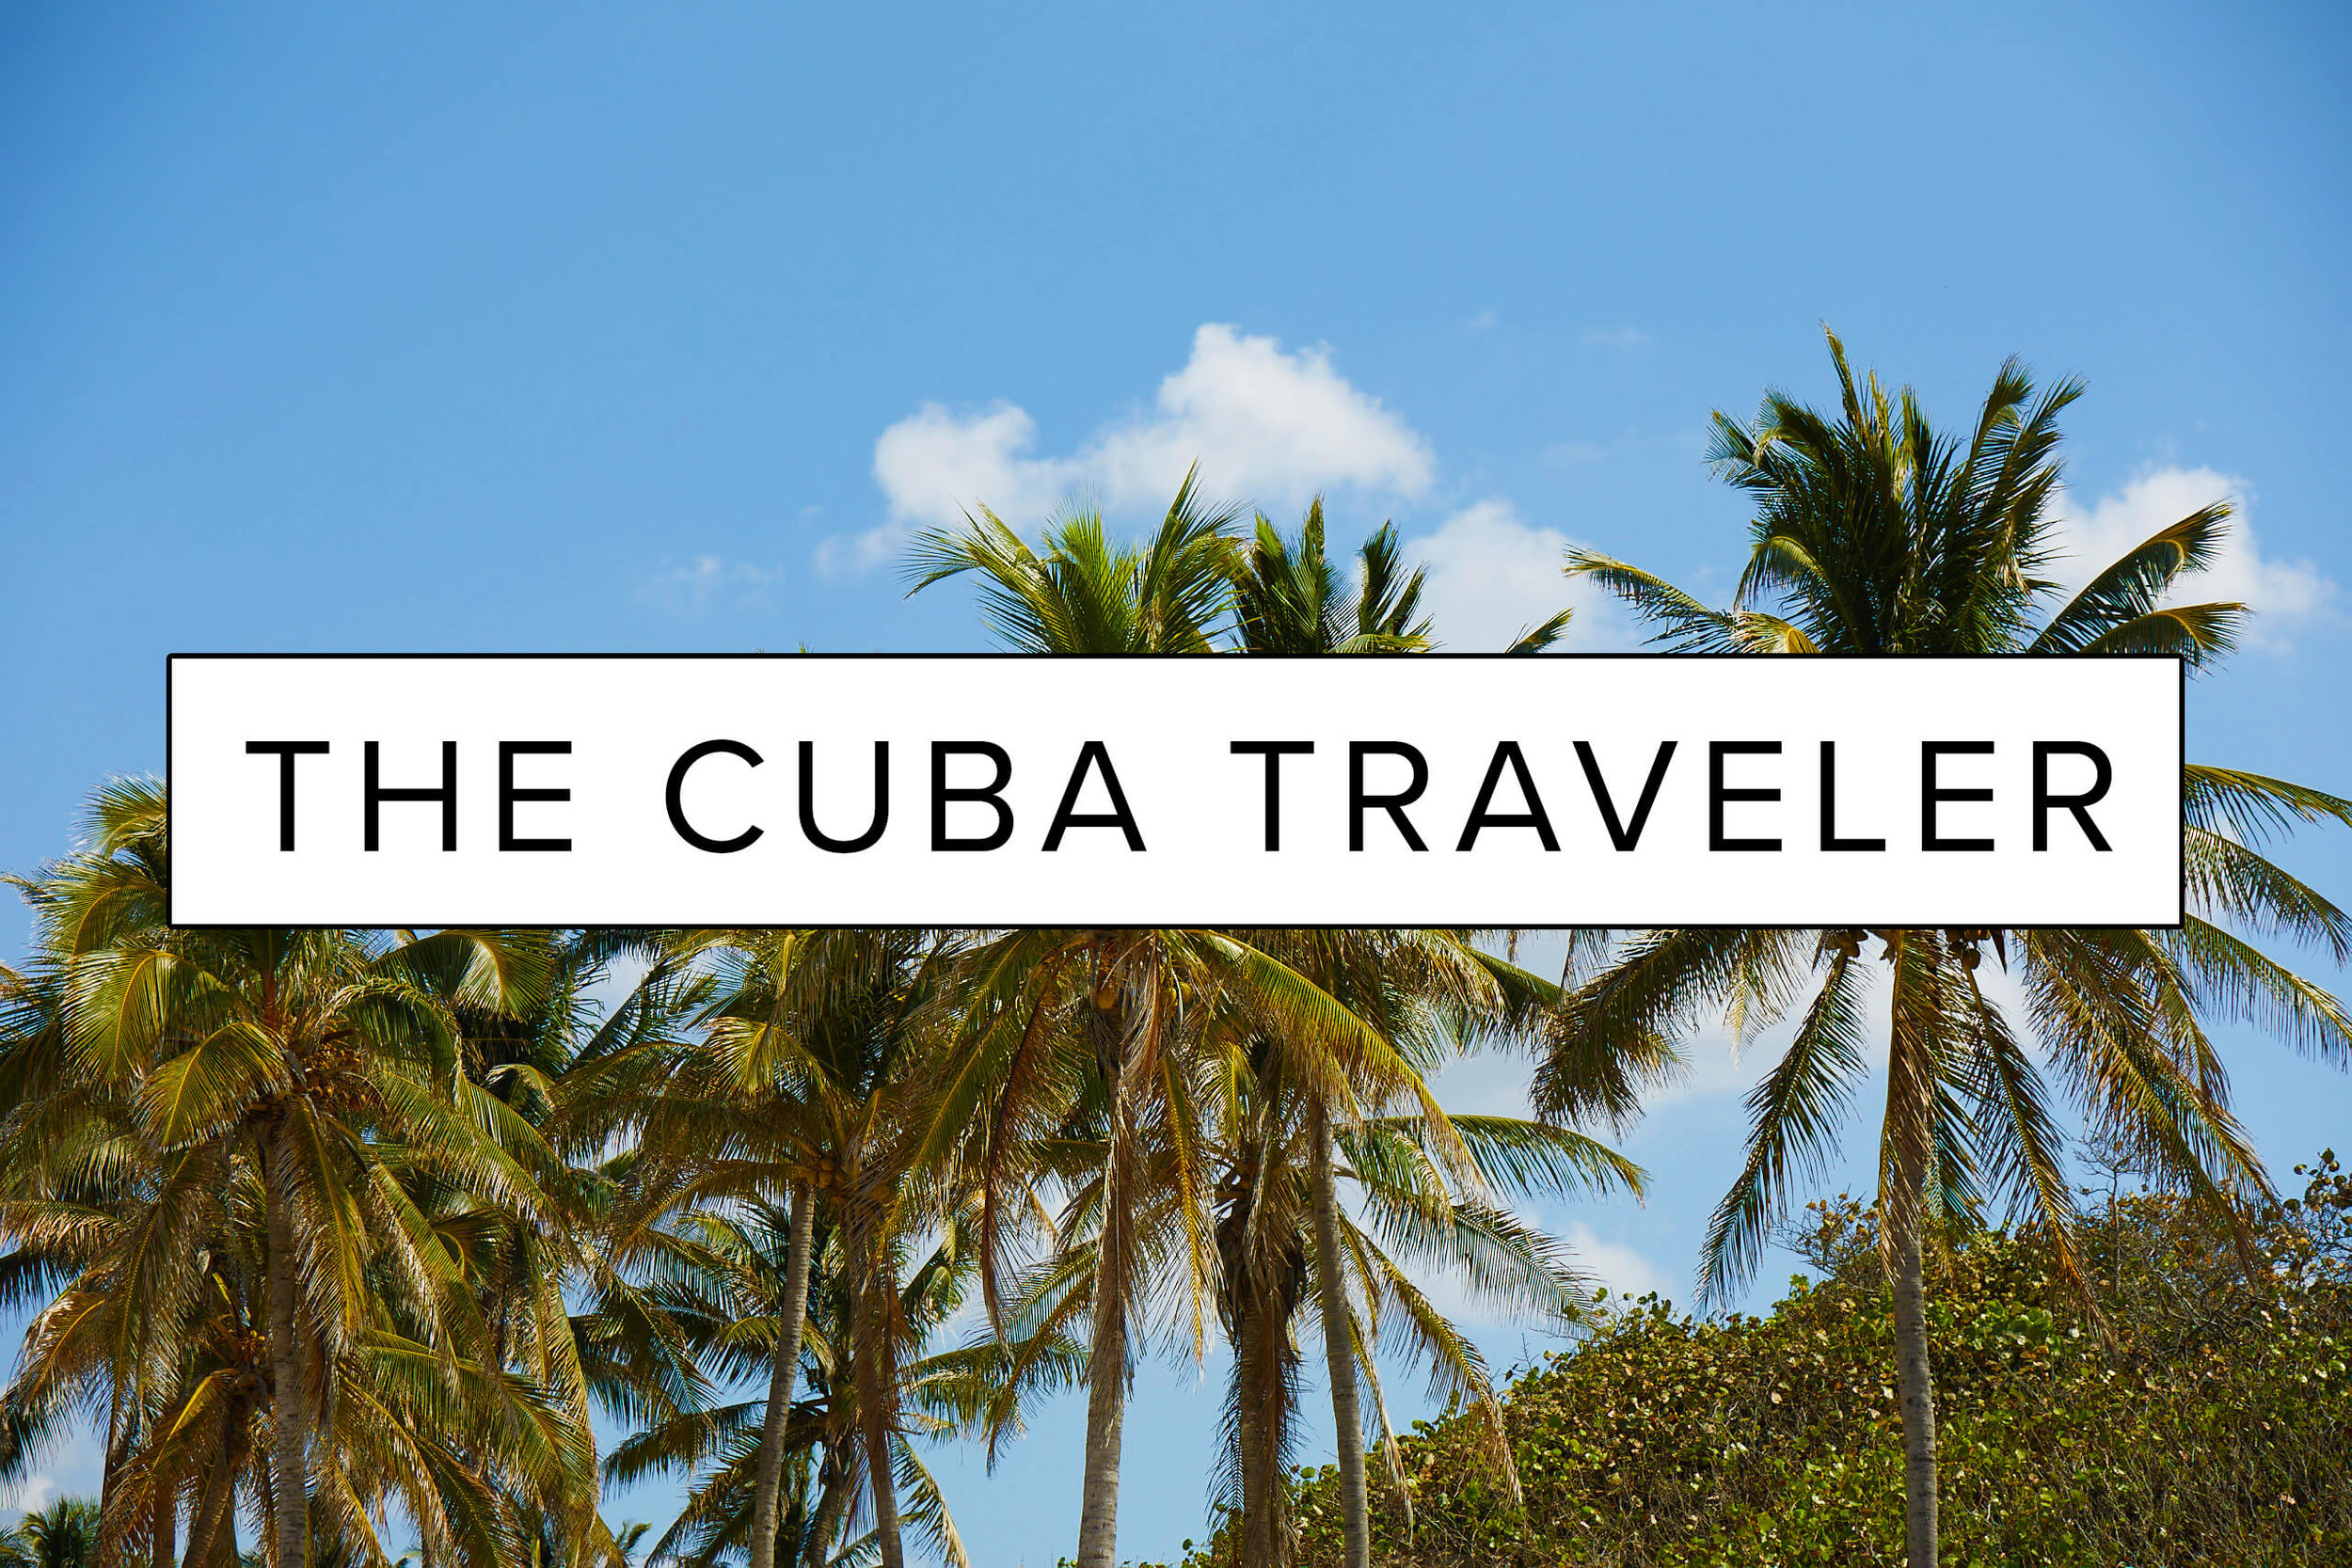 THE_CUBA_TRAVELER_Blog.jpg